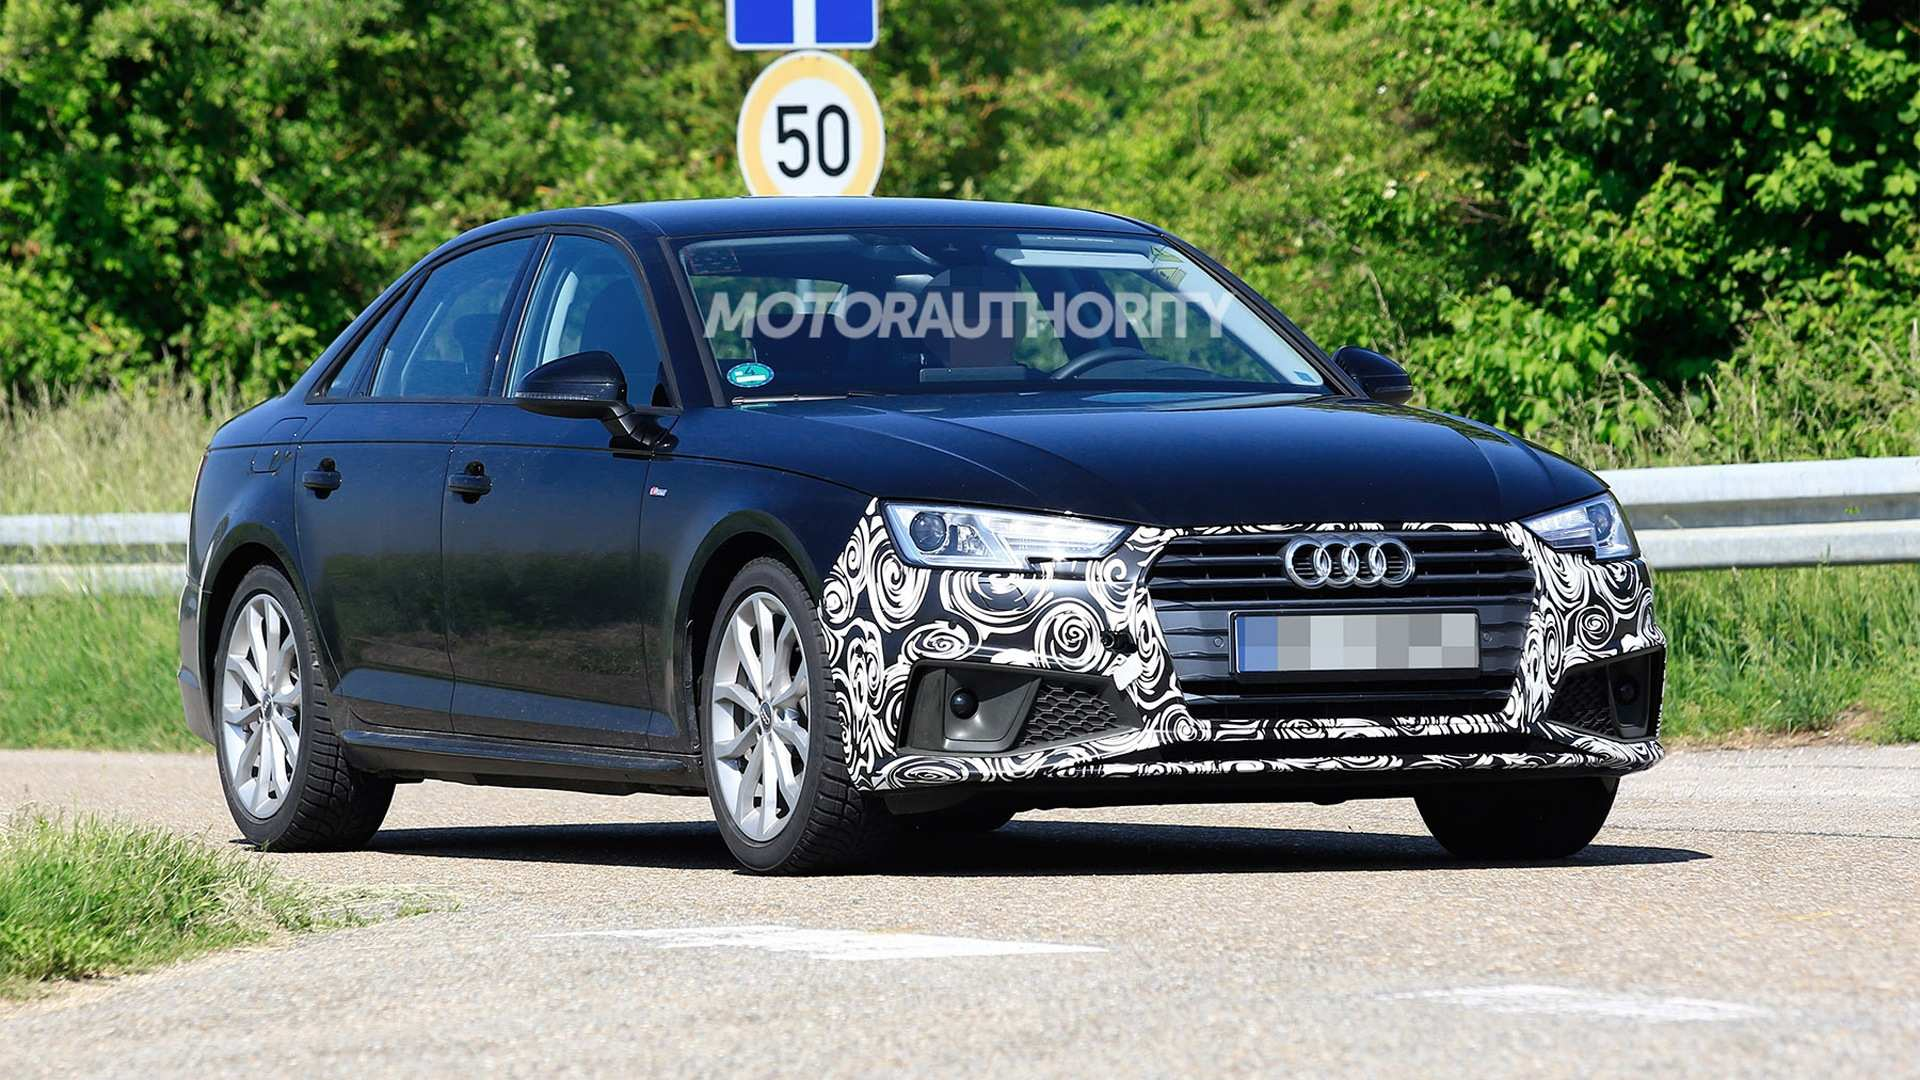 88 All New Audi A4 B10 2020 Price with Audi A4 B10 2020